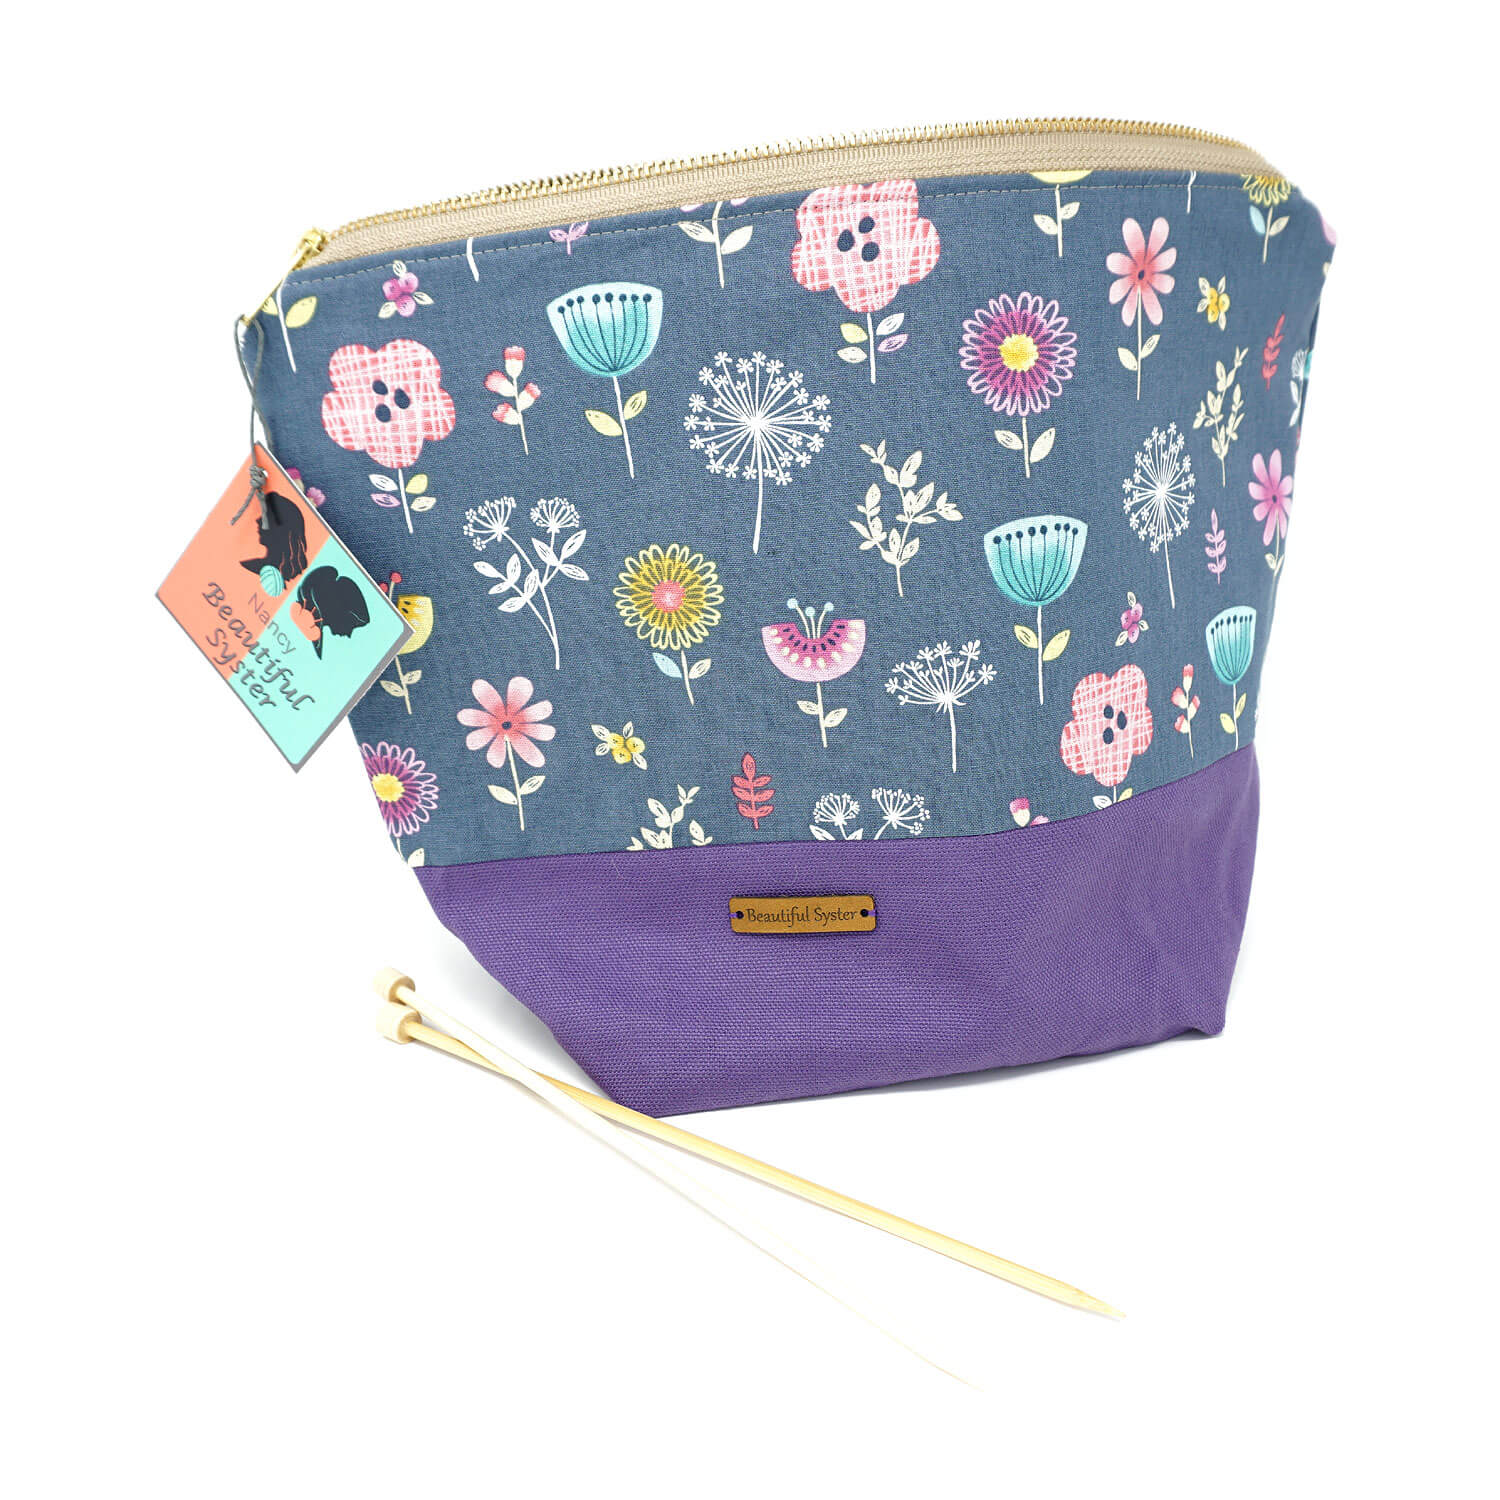 Beautiful Syster Nancy zipped project bag with flowers. Bag is stood up with a pair of knitting needles beside.